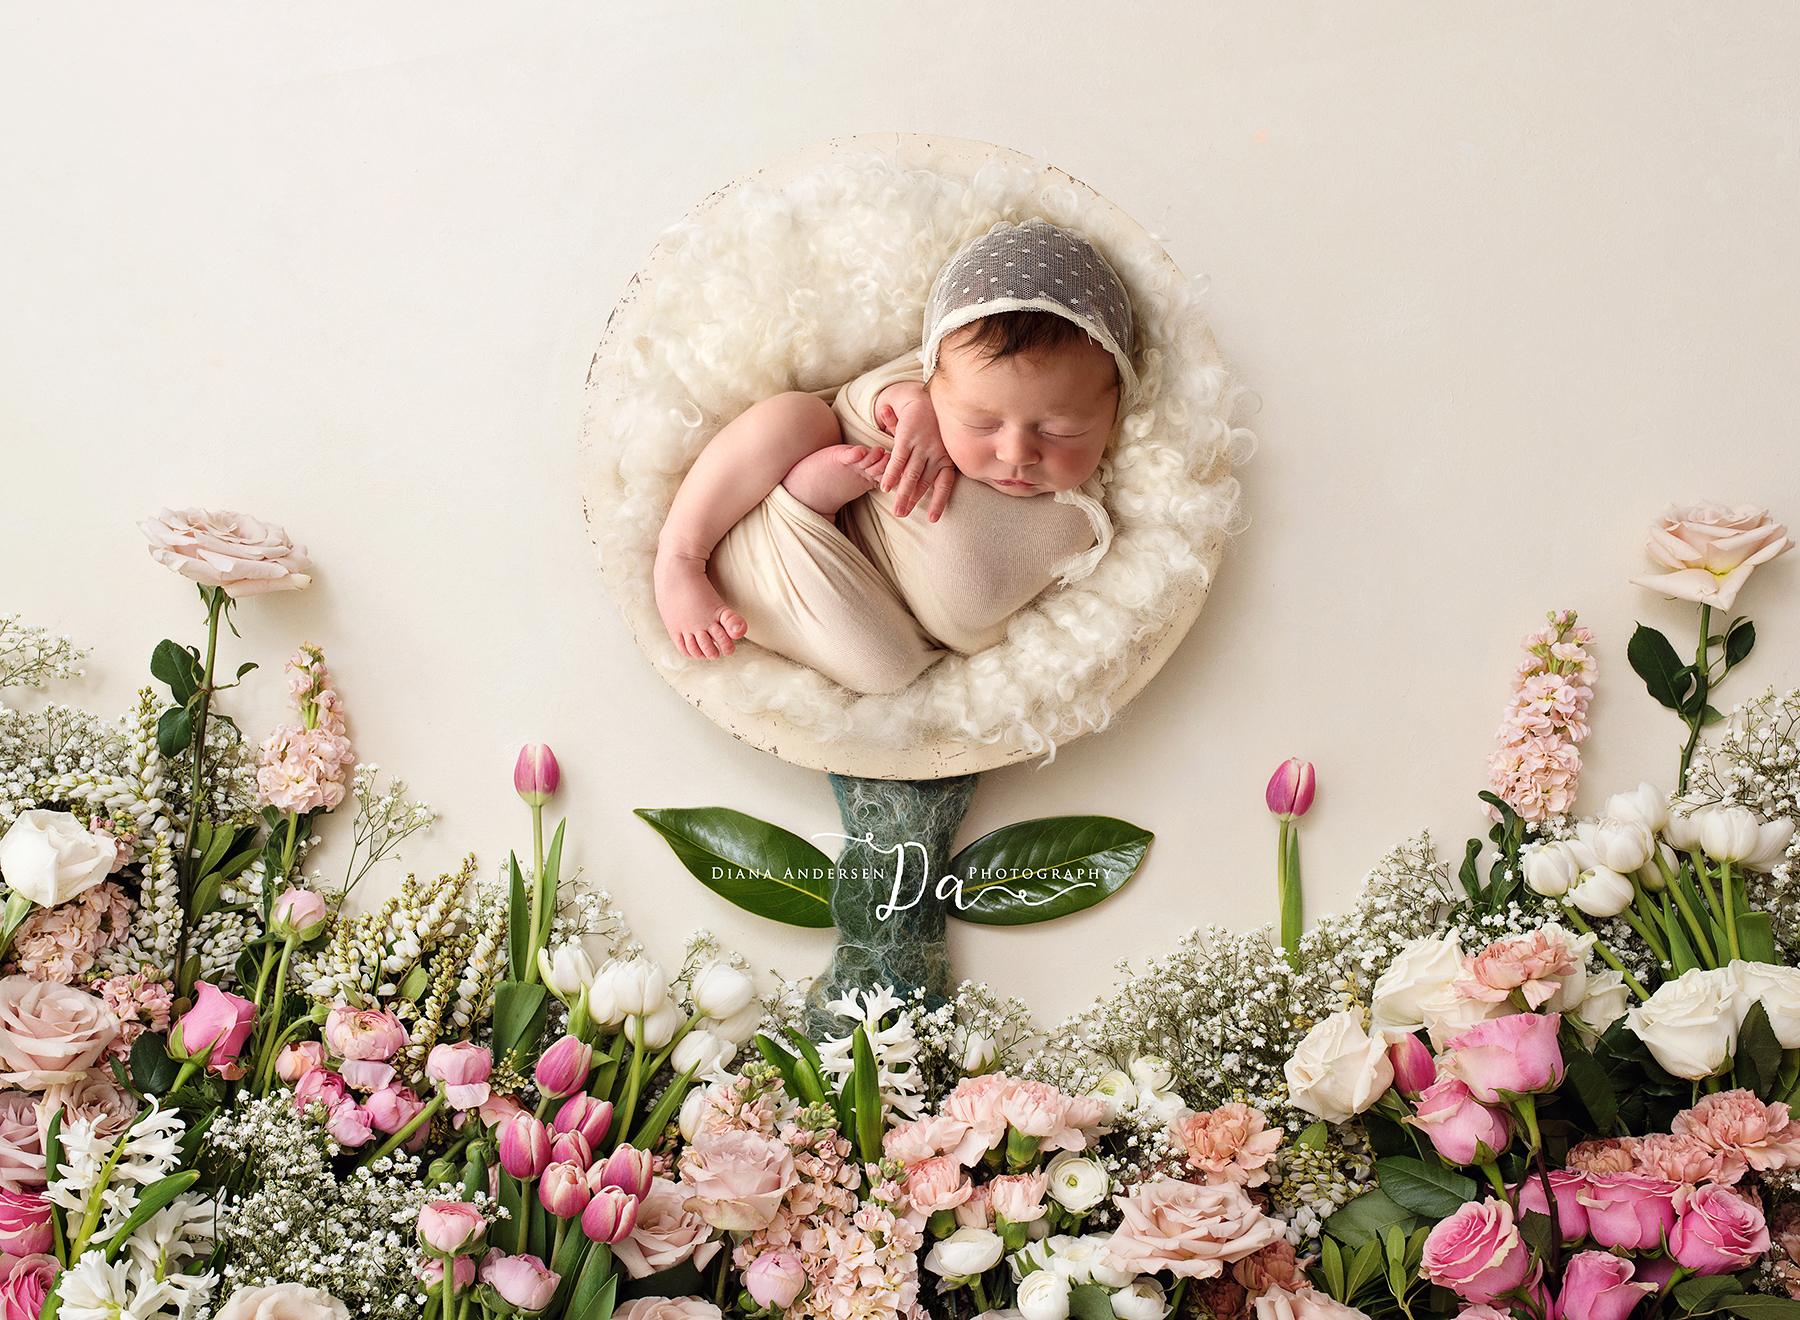 Catherine-newborn11-fb.jpg